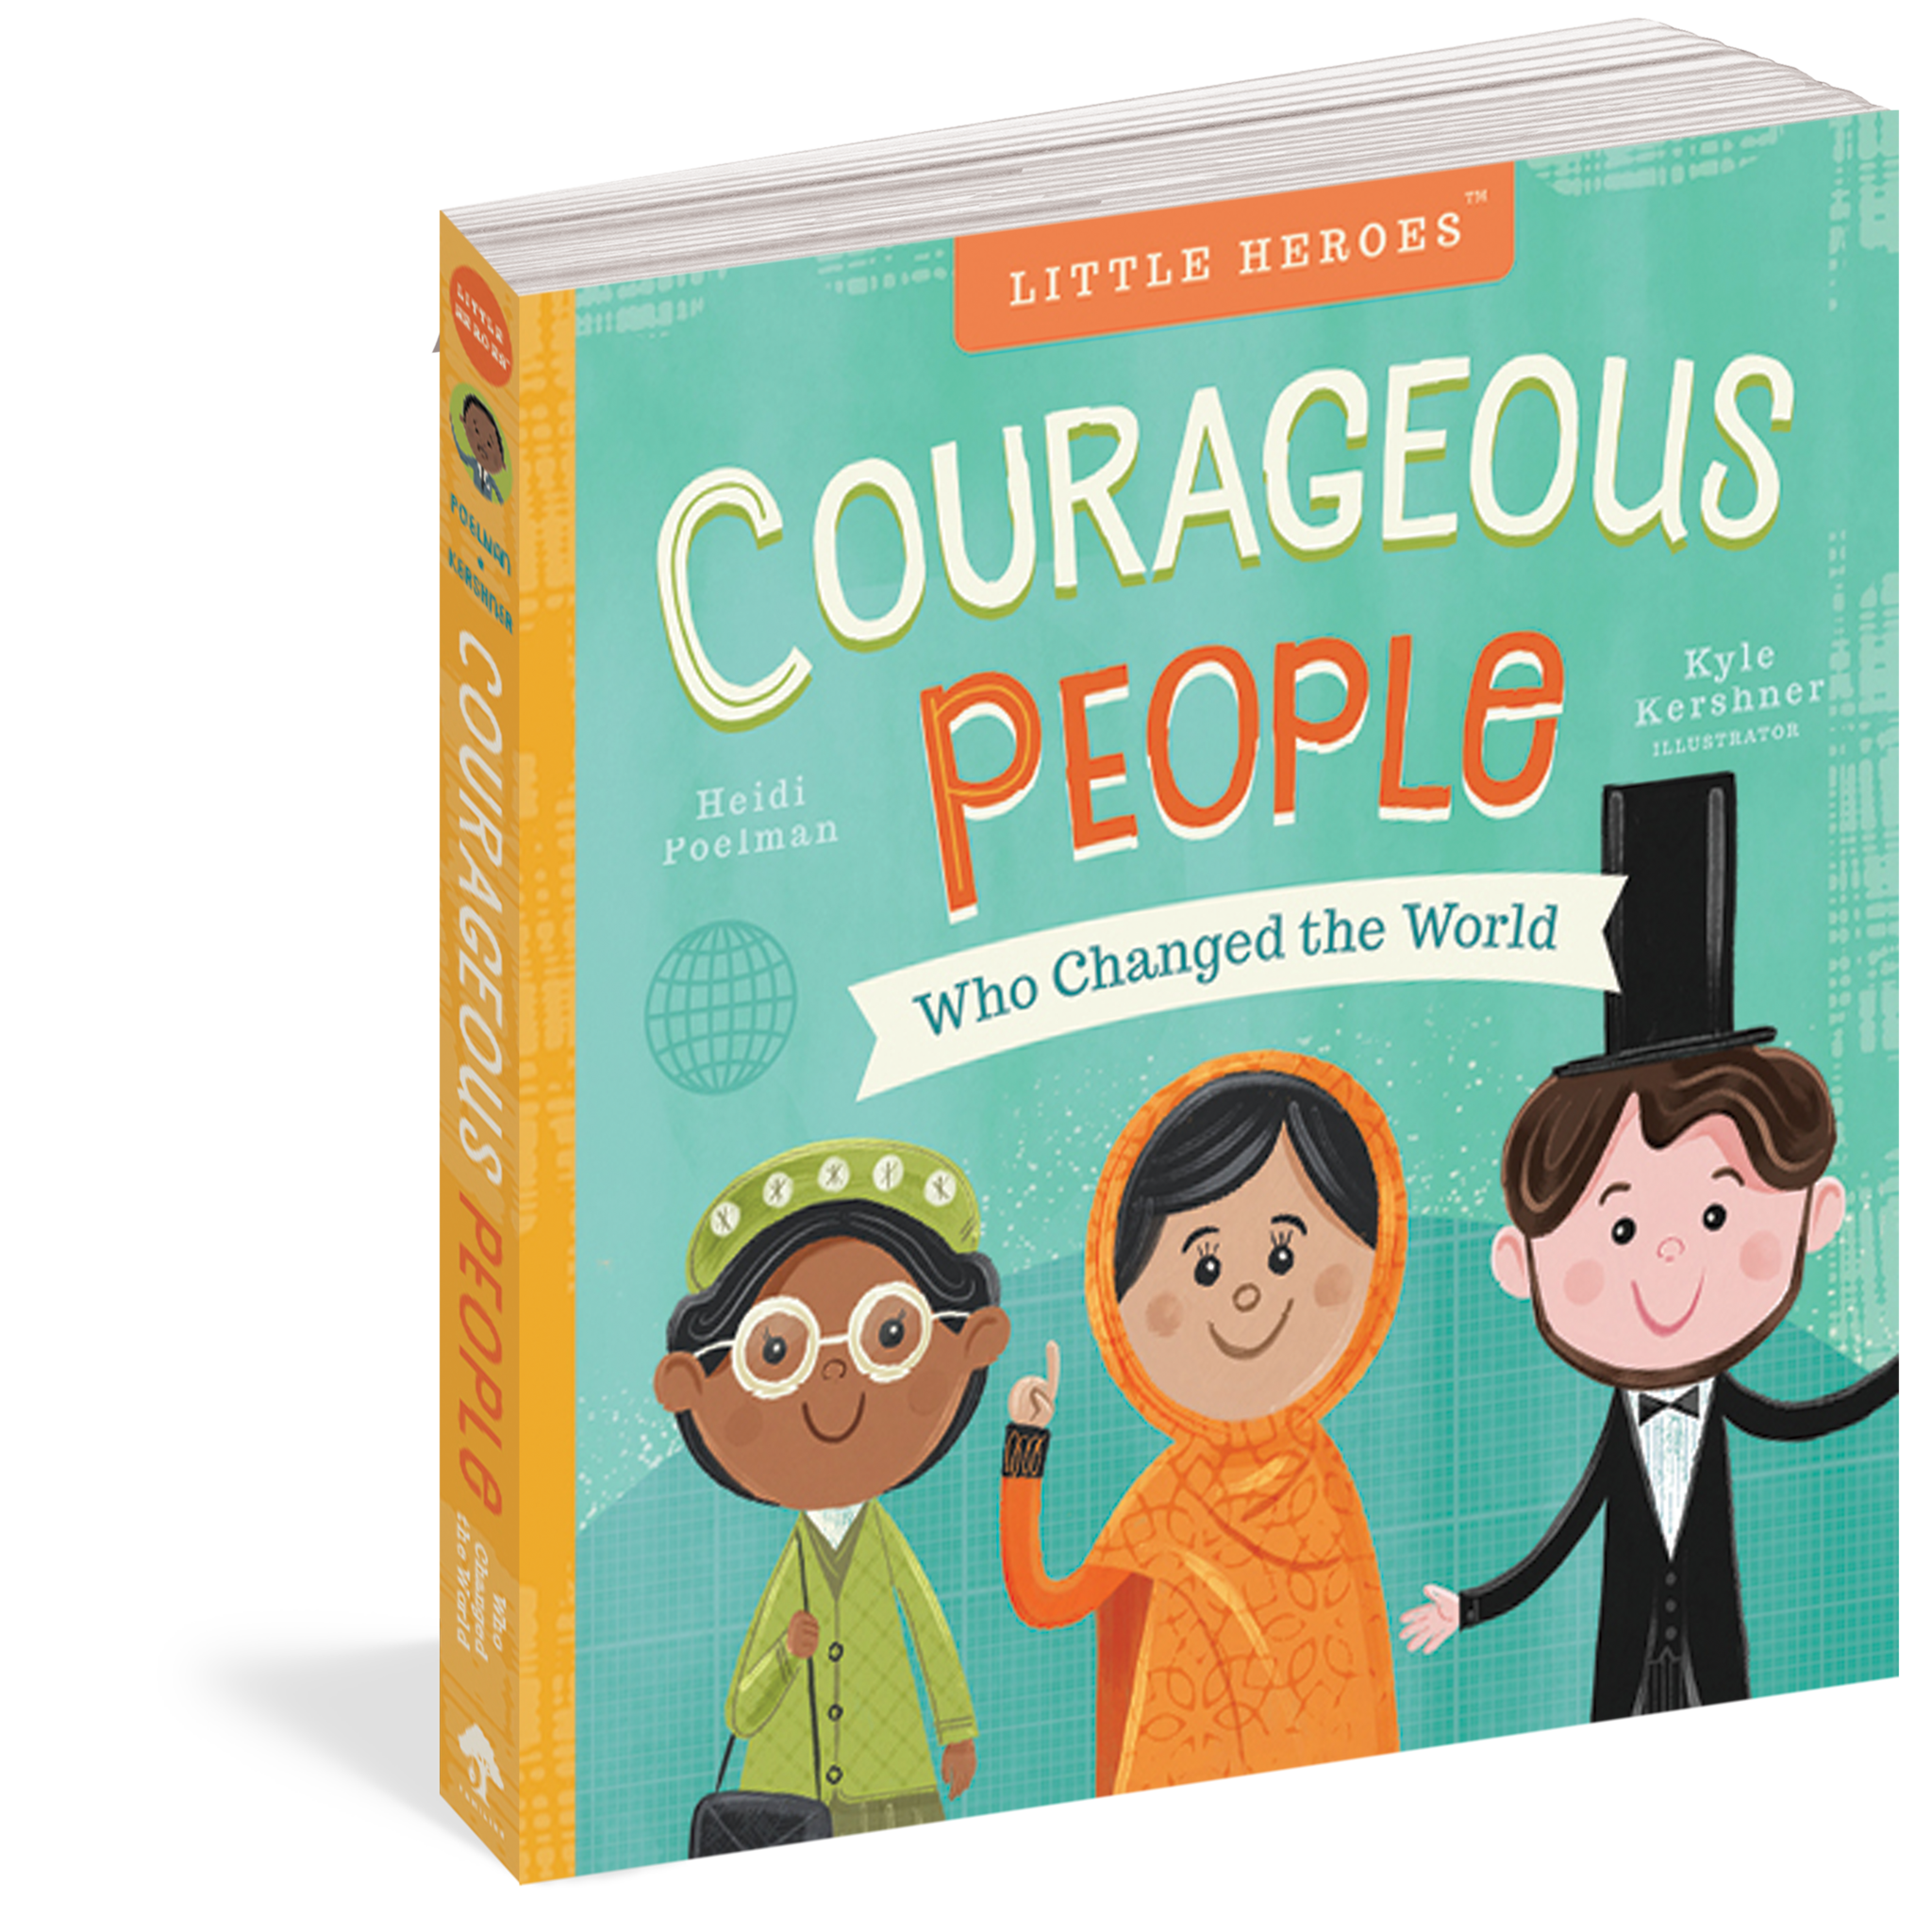 workman publishing Courageous People Who Changed the World